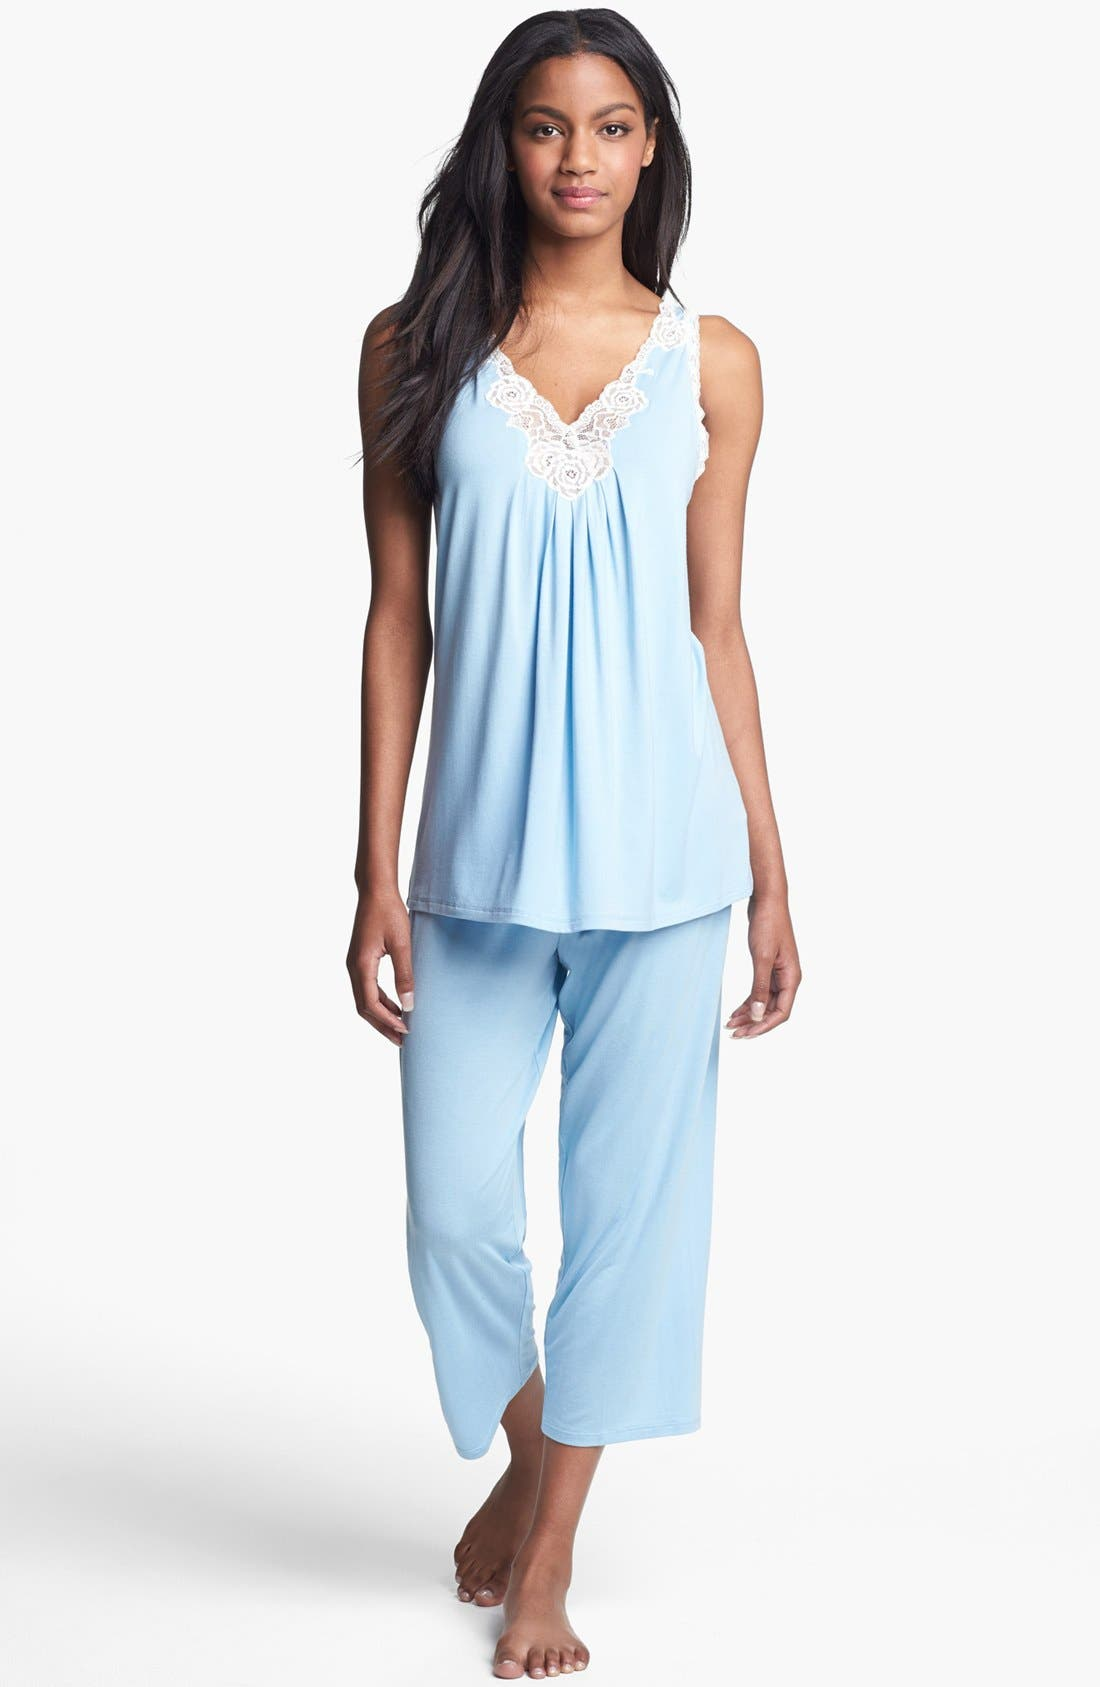 Alternate Image 1 Selected - Midnight by Carole Hochman Lace Trim Capri Pajamas